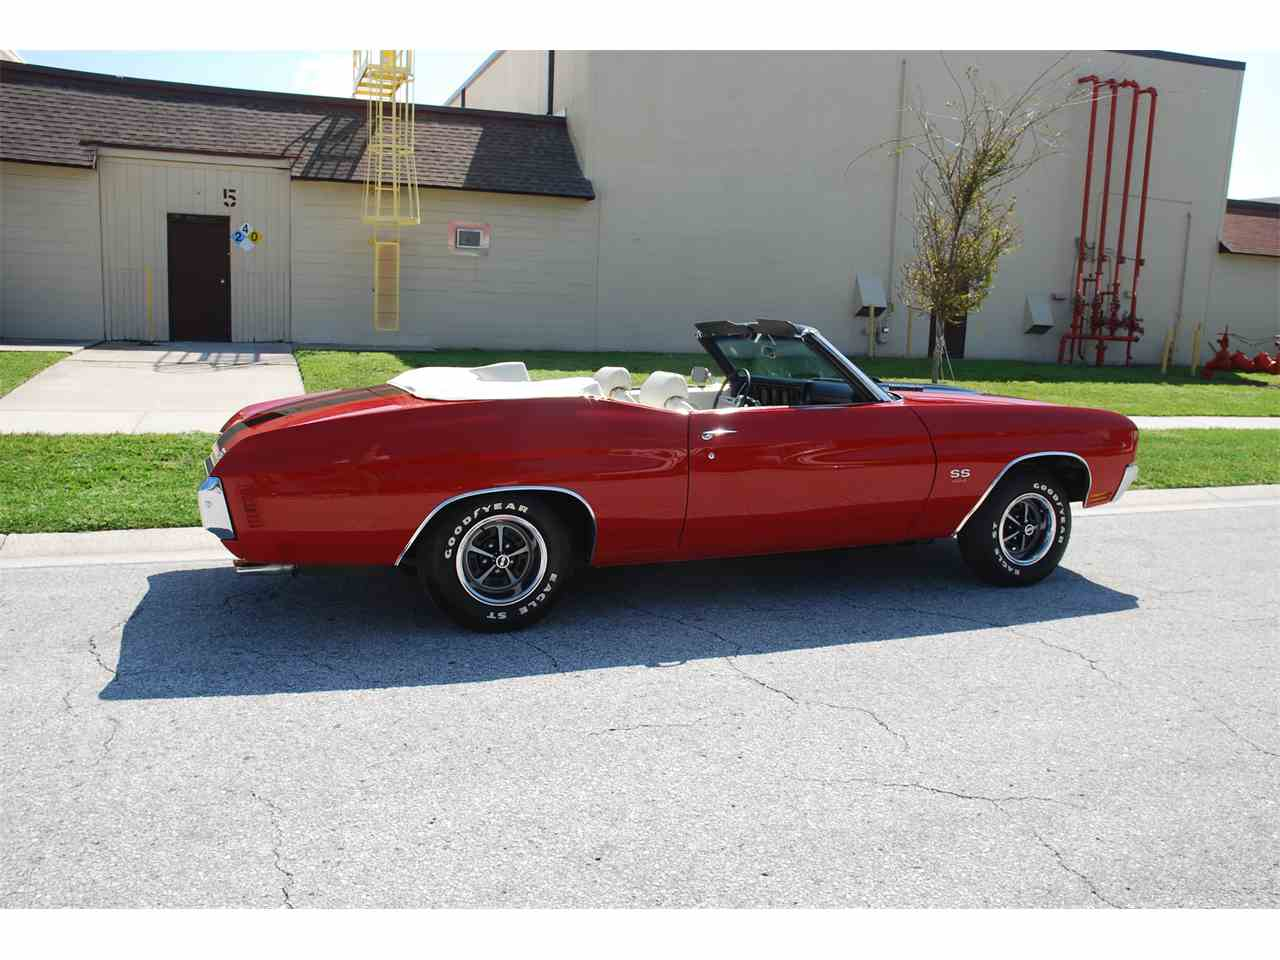 All Chevy 1970 chevrolet chevelle ss 454 : 1970 Chevrolet Chevelle for Sale on ClassicCars.com - 151 Available